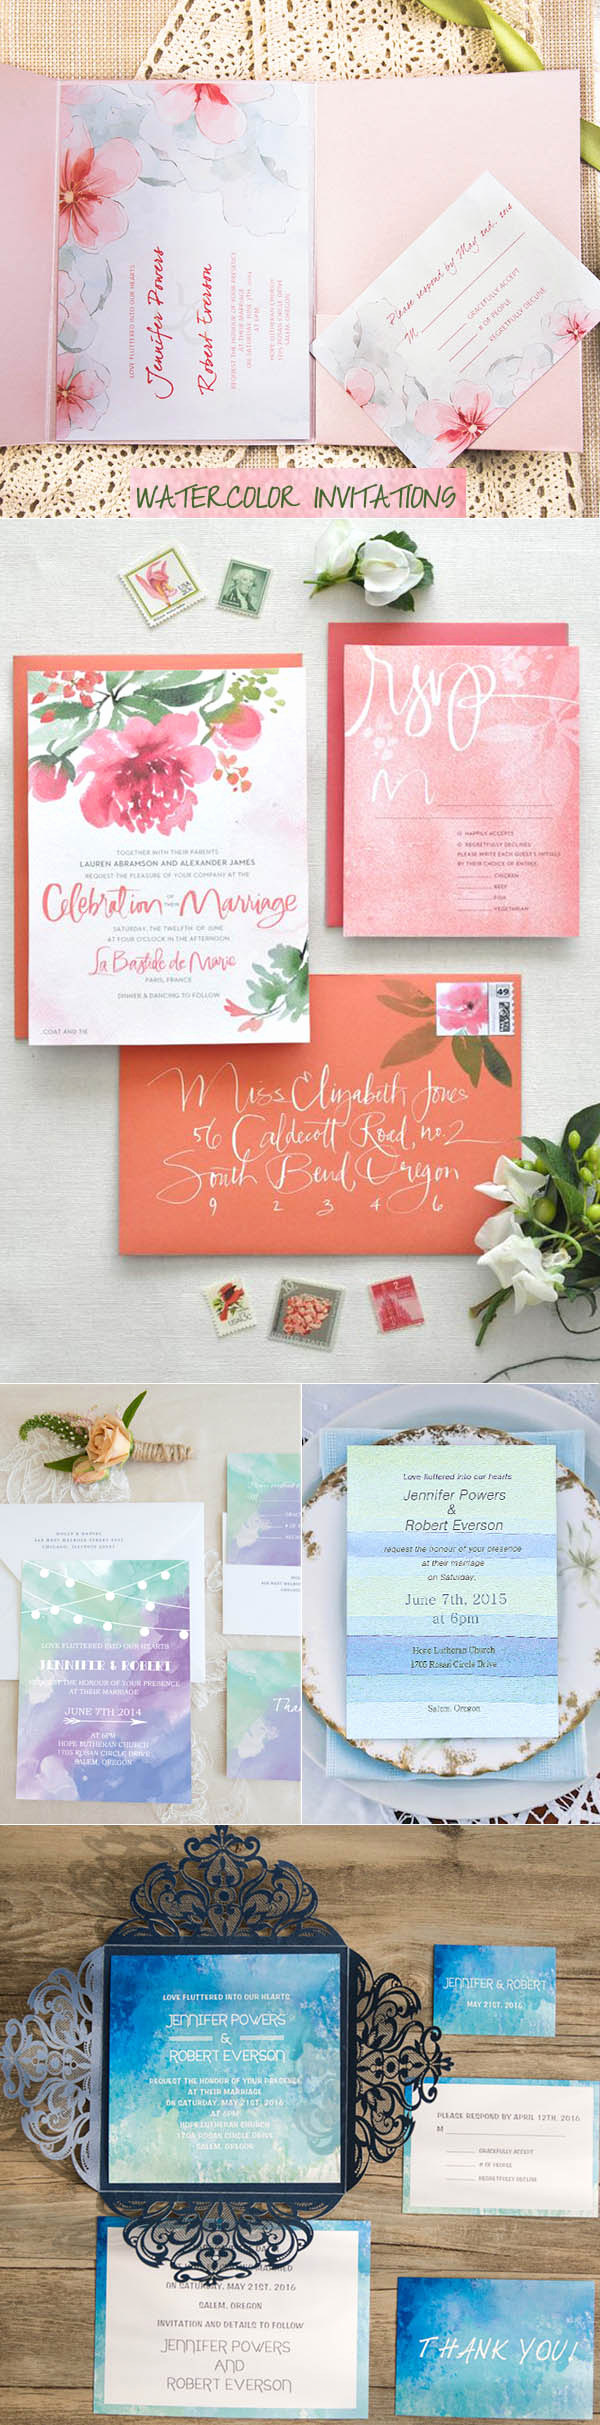 Wedding Invitation Trends 2017 Elegant top 10 Wedding Invitation Trends for 2017